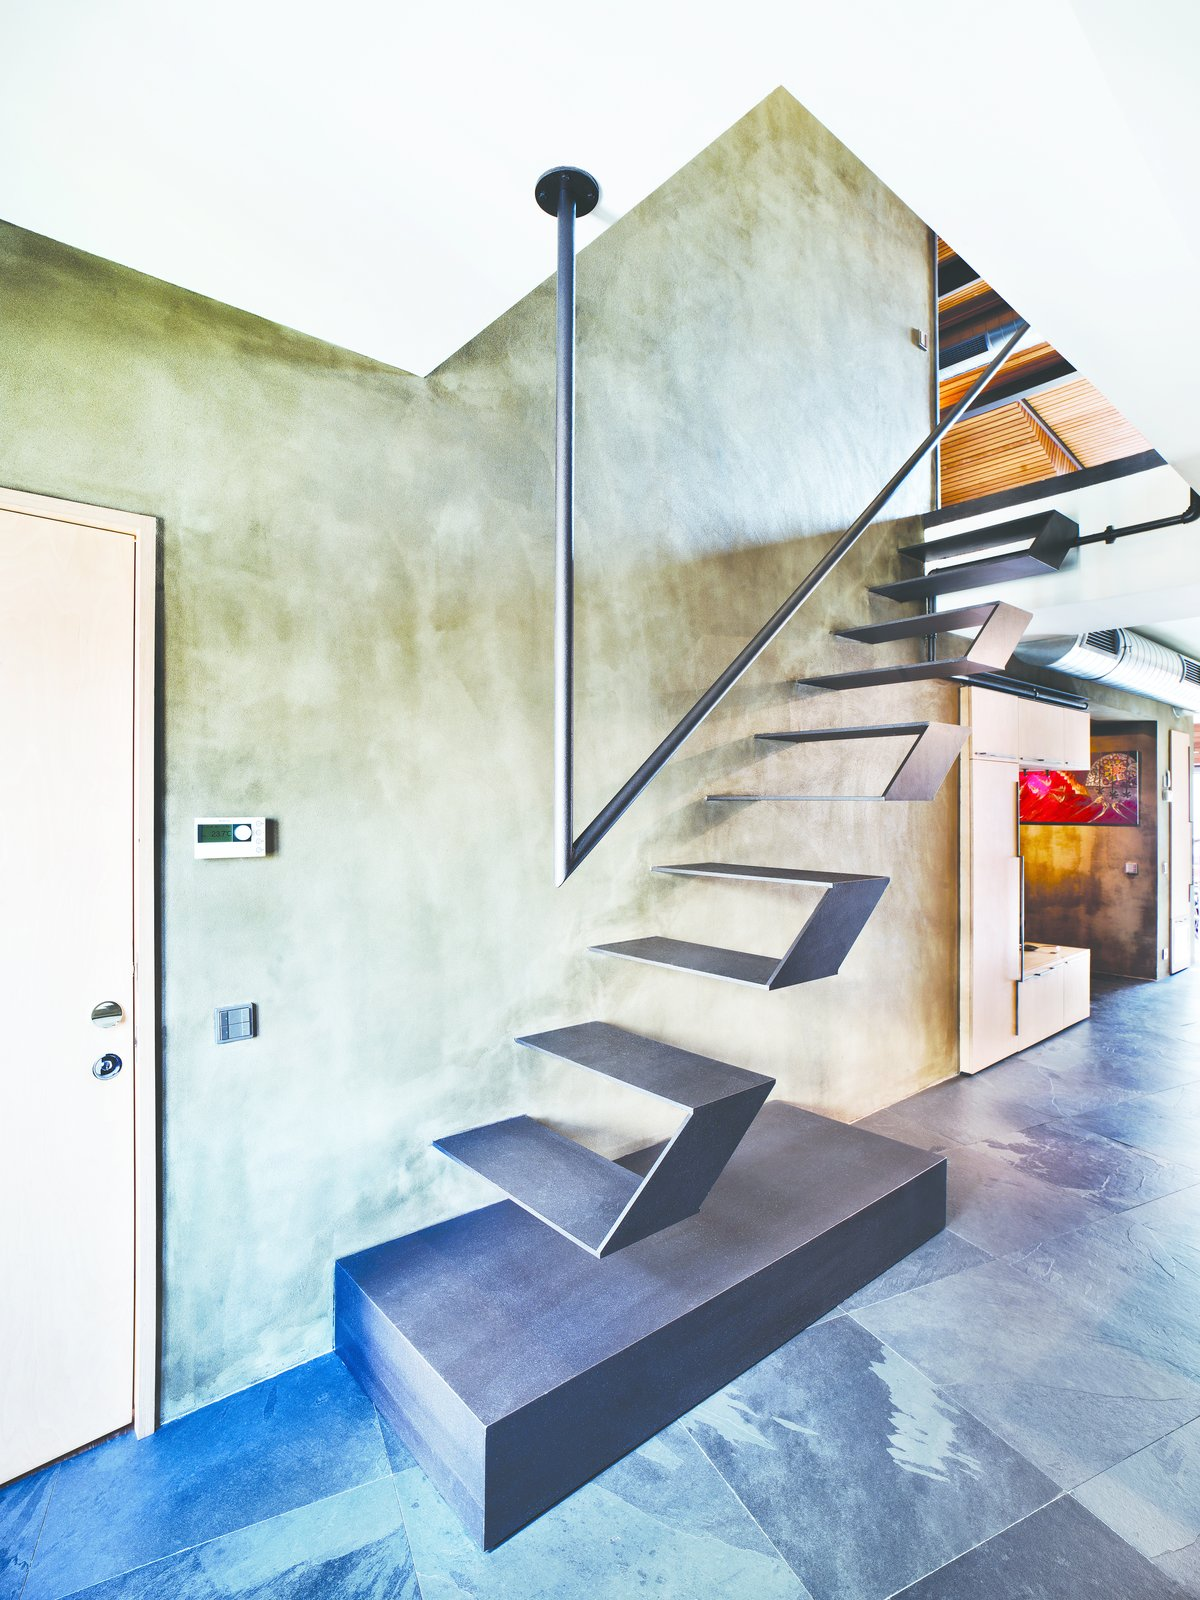 Futuristic floating stairs lead to the loft's mezzanine. Throughout the lower level, natural stone was chosen for the flooring, laid at an irregular angle to add visual interest. Tagged: Staircase, Metal Railing, and Metal Tread.  Loft from A Single-Room Loft with Impressive Wall-to-Wall Storage